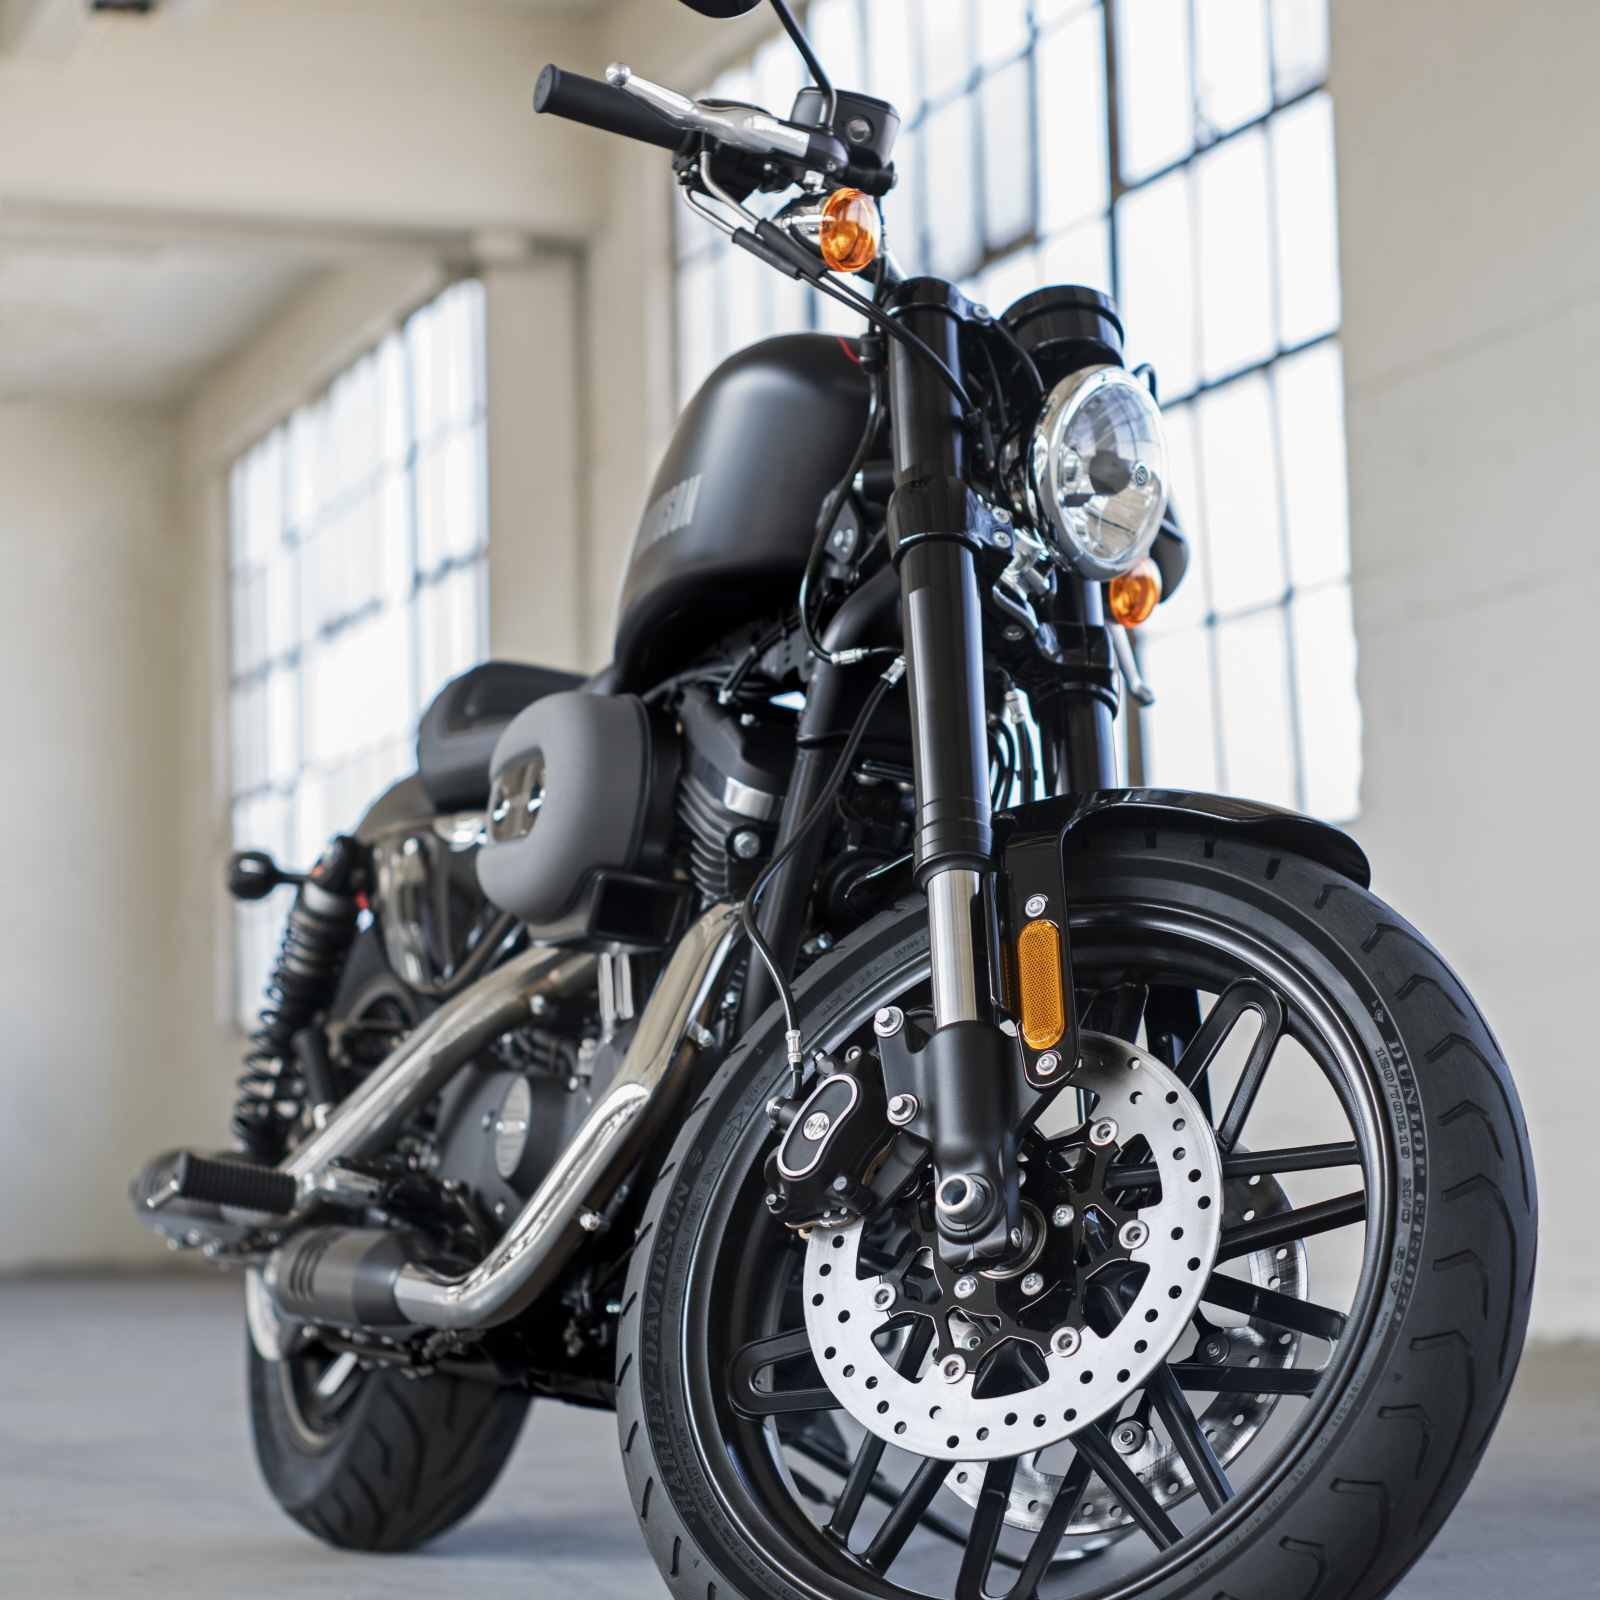 5 Reasons the New Harley-Davidson Roadster Will Reinvent the